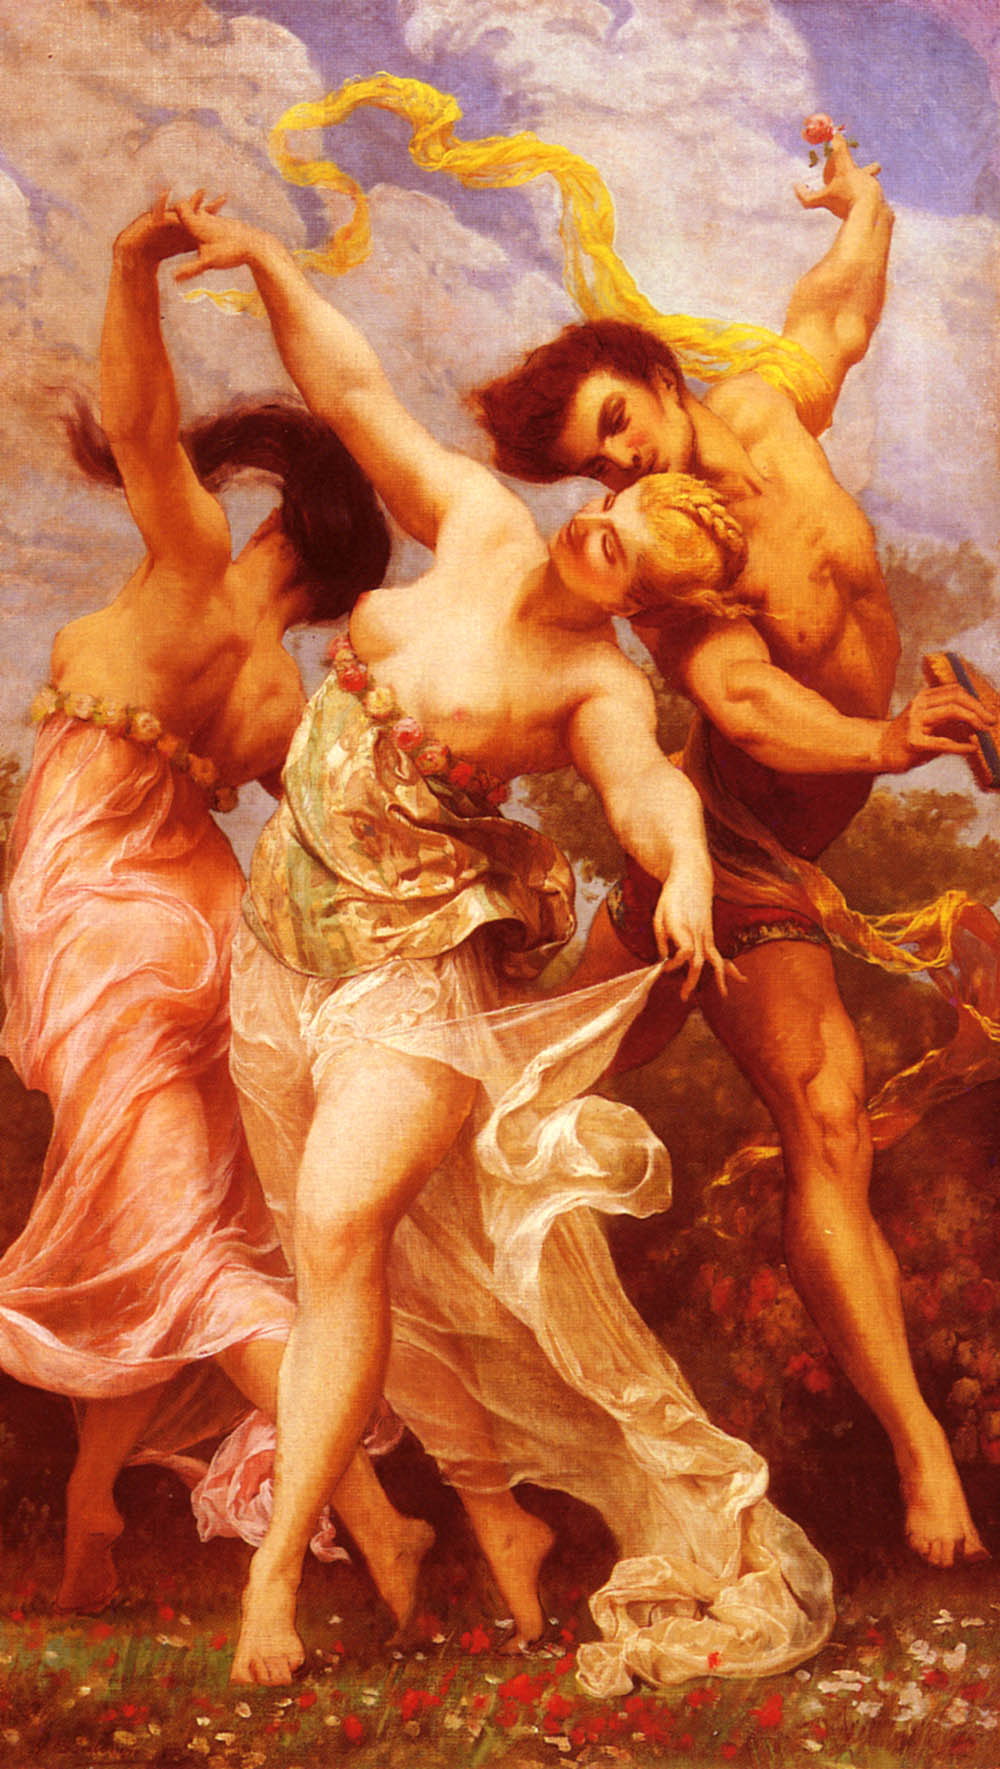 the-amorous-dancers